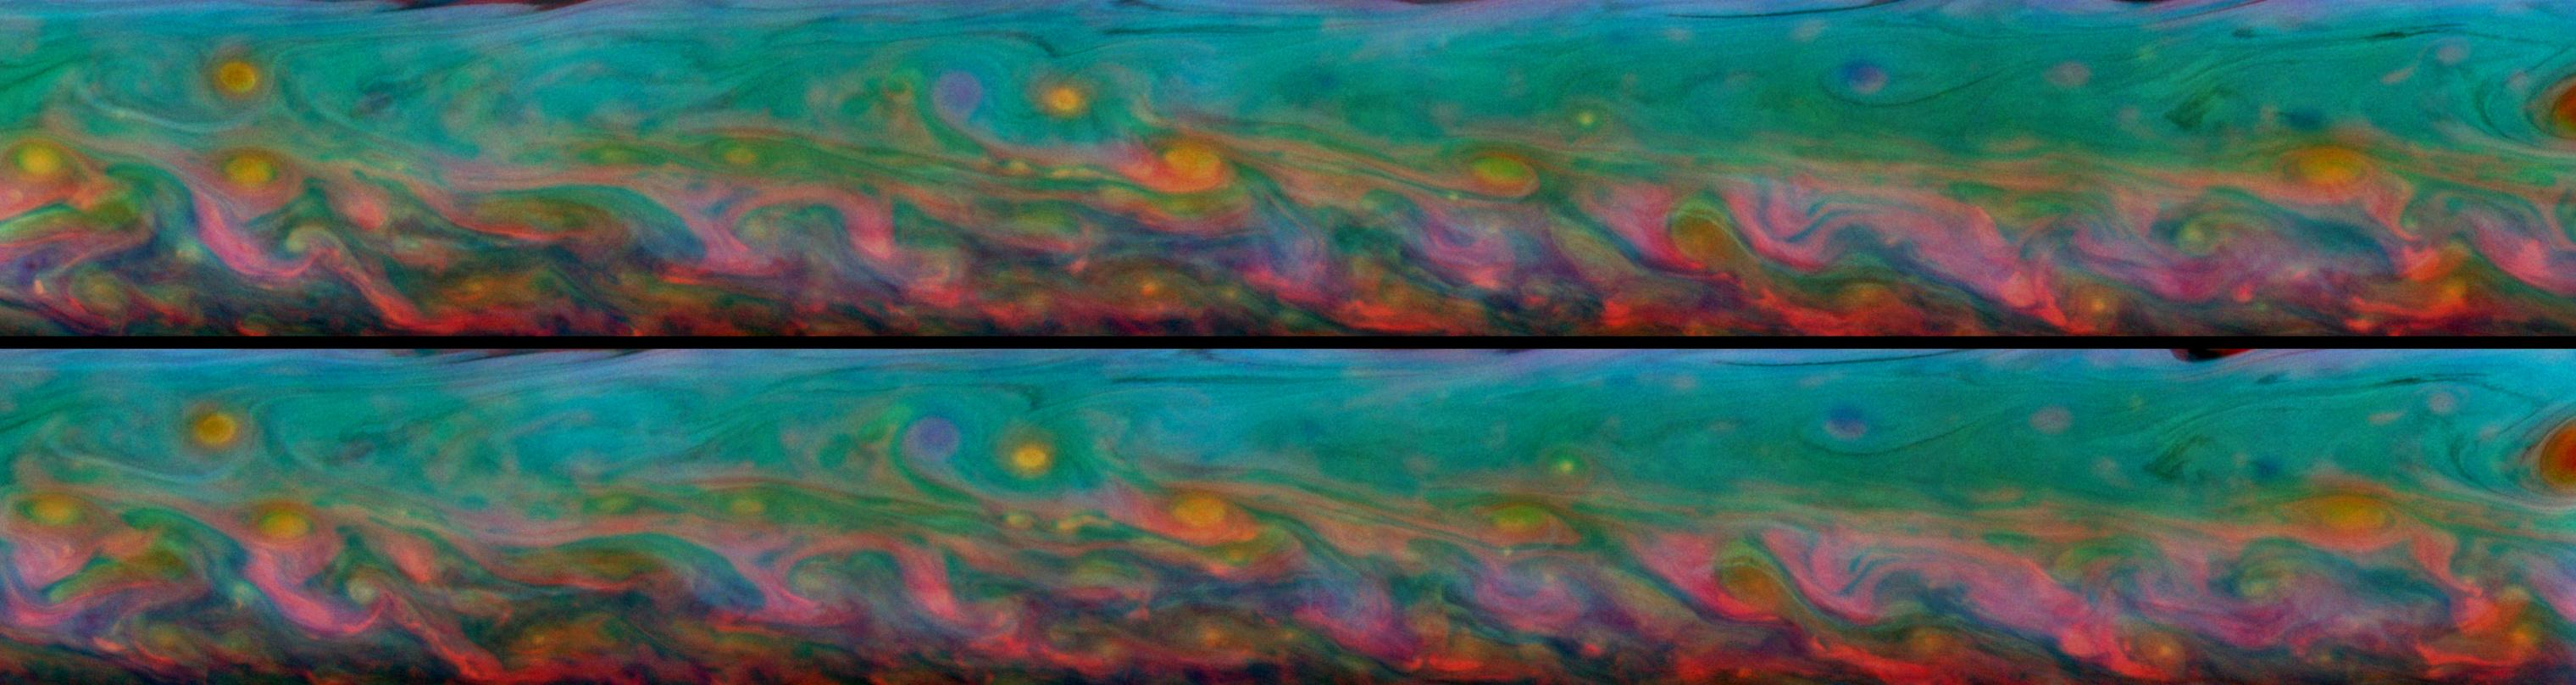 Patterns that come and go in the course of one Saturn day within the huge storm in the planet's northern hemisphere.